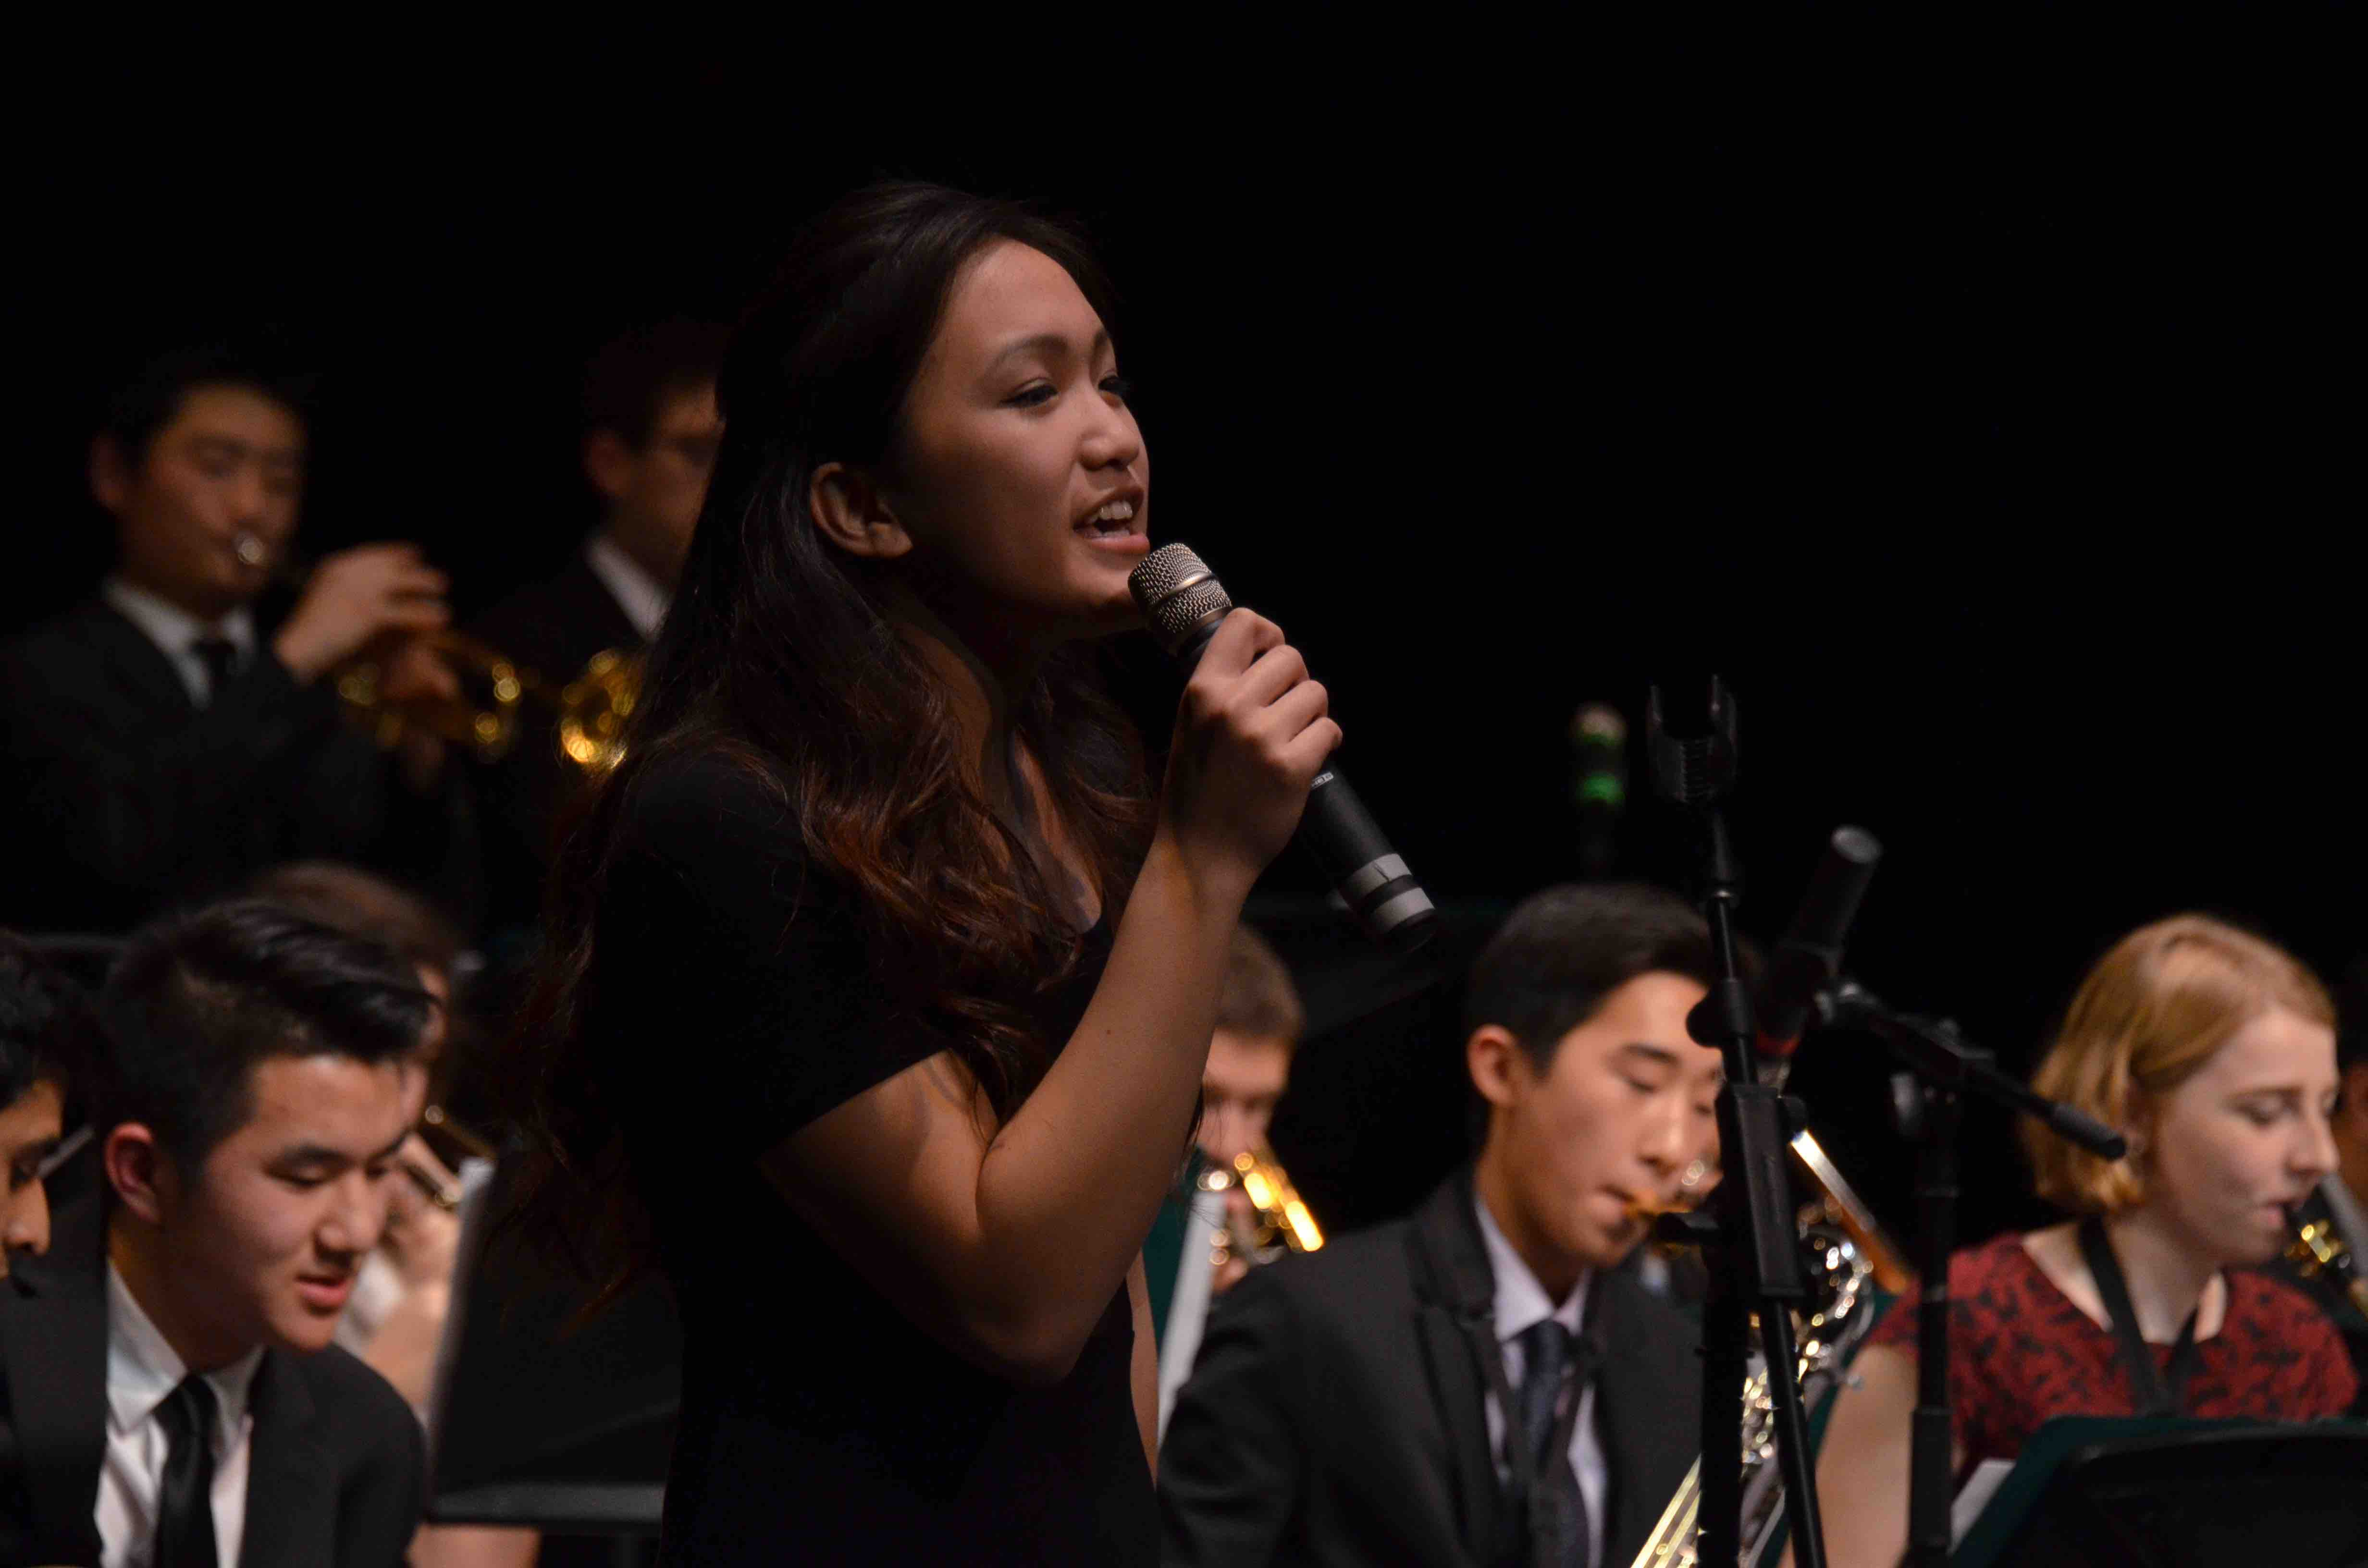 Lindsey+Trinh+%2812%29+sings+with+the+upper+school+Jazz+Band.+The+Winter+Concert+took+place+on+January+13+at+the+Mexican+Heritage+Theater.